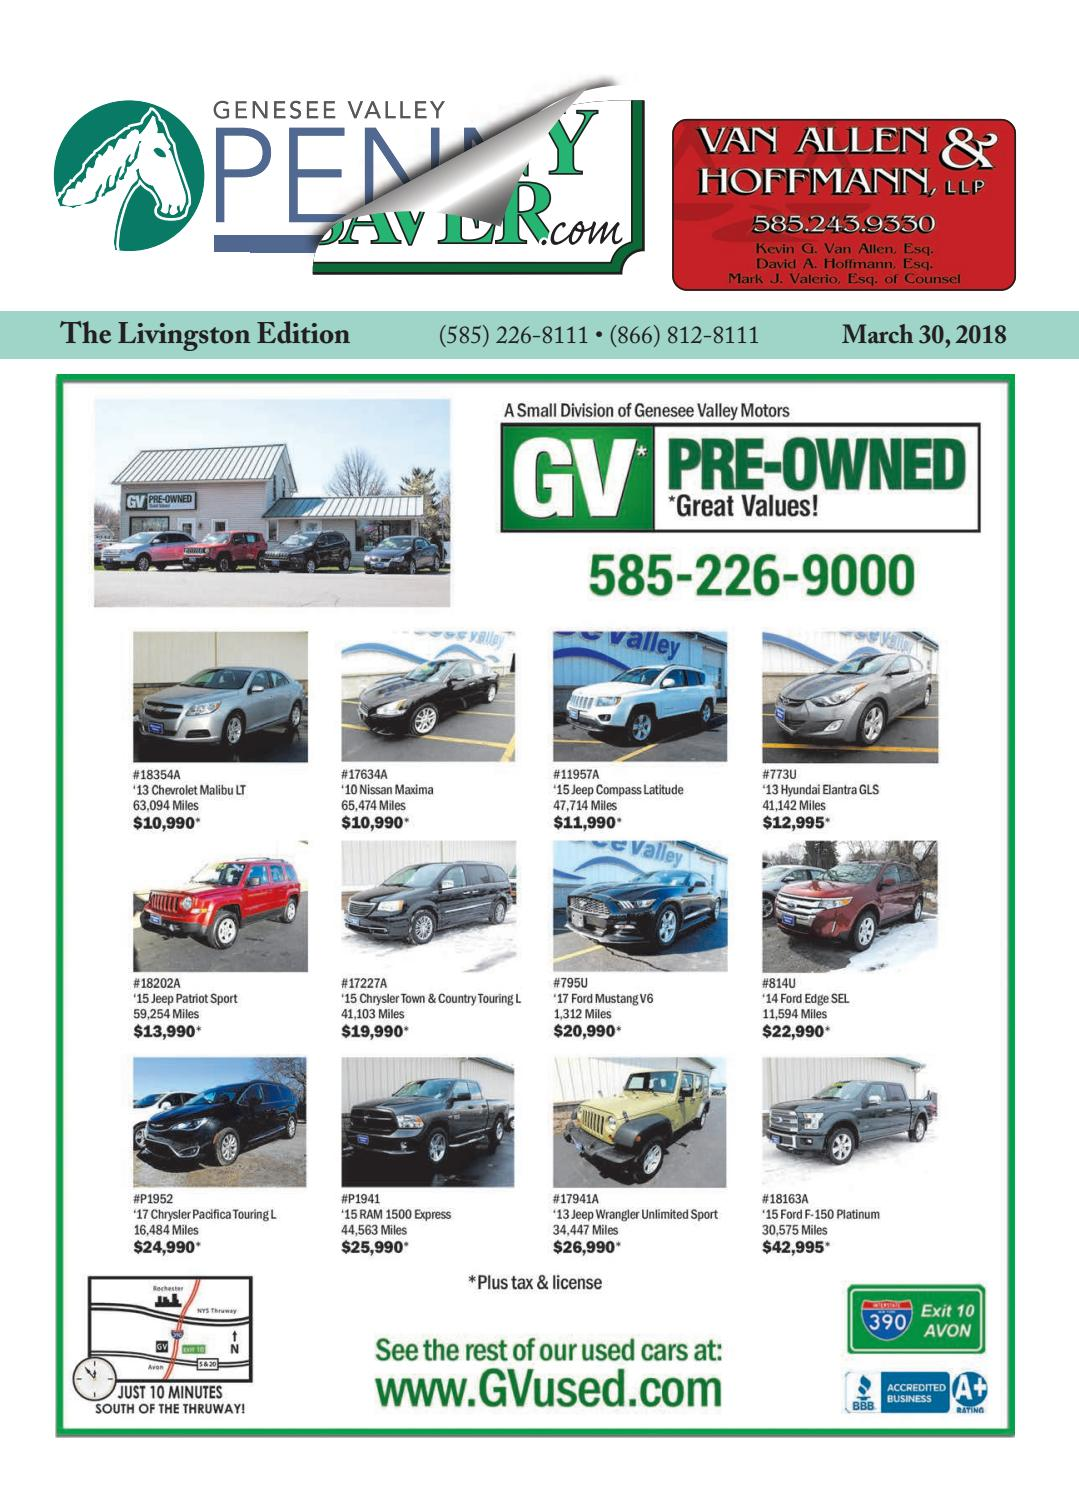 Livingston Edition - The Genesee Valley Penny Saver 3/30/18